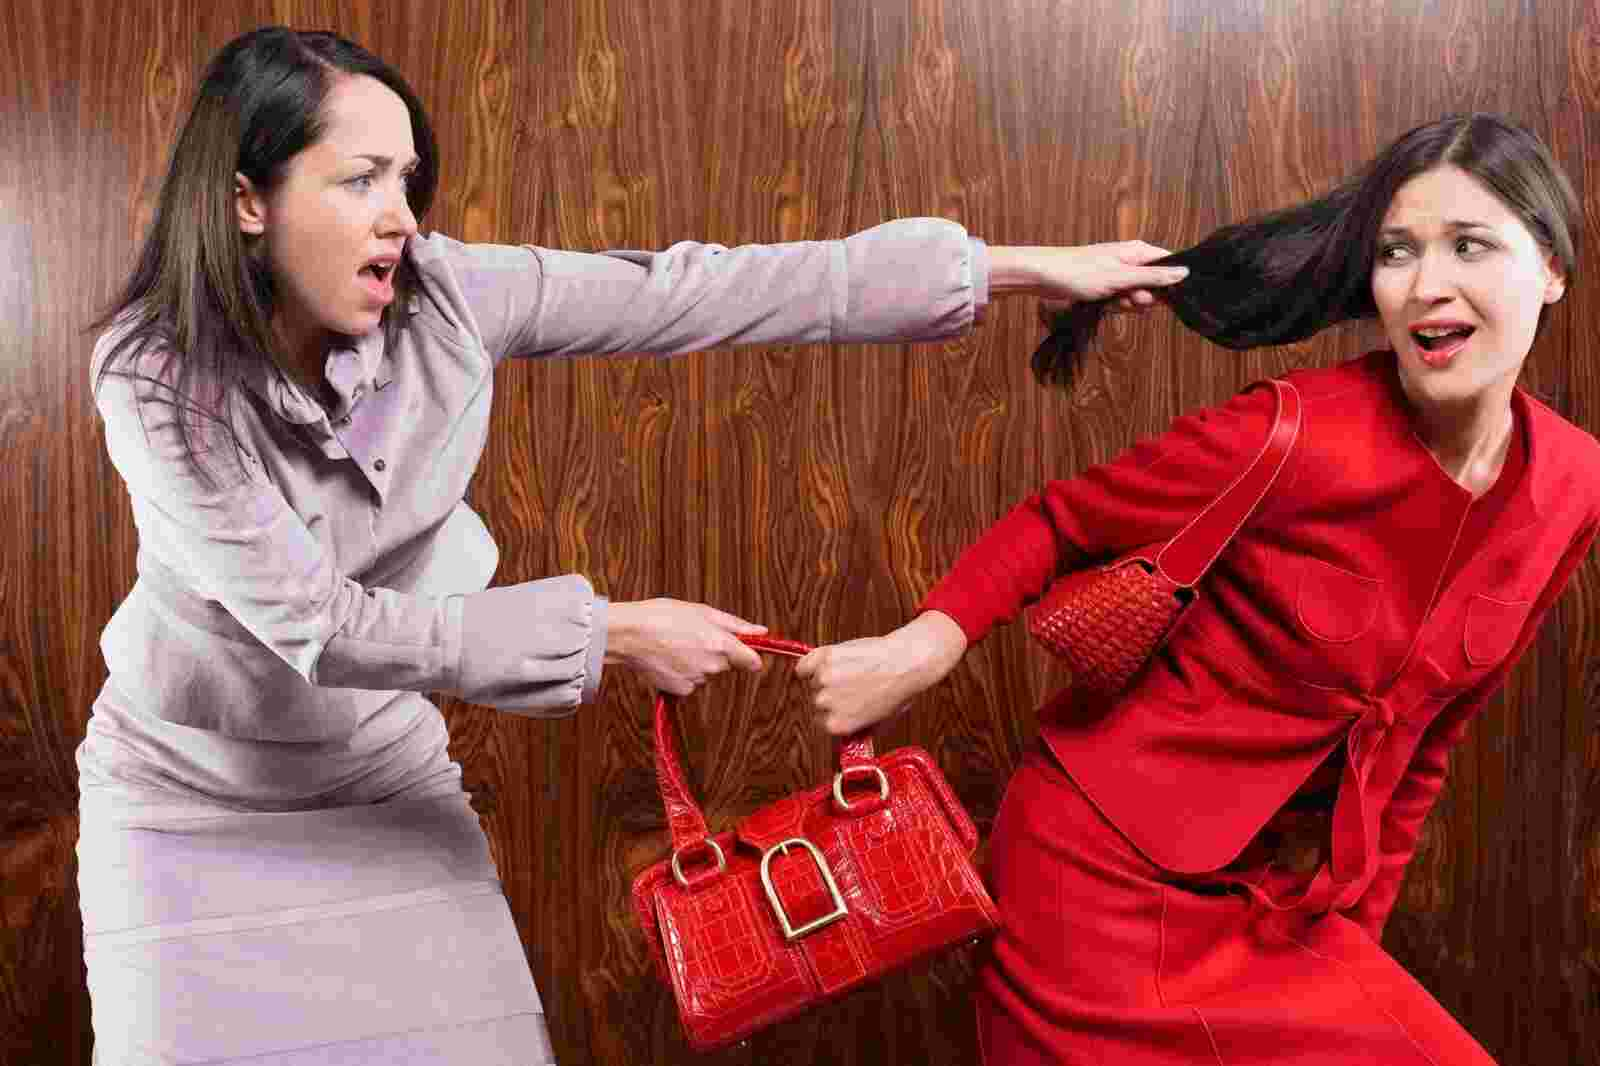 Image result for women fighting at work